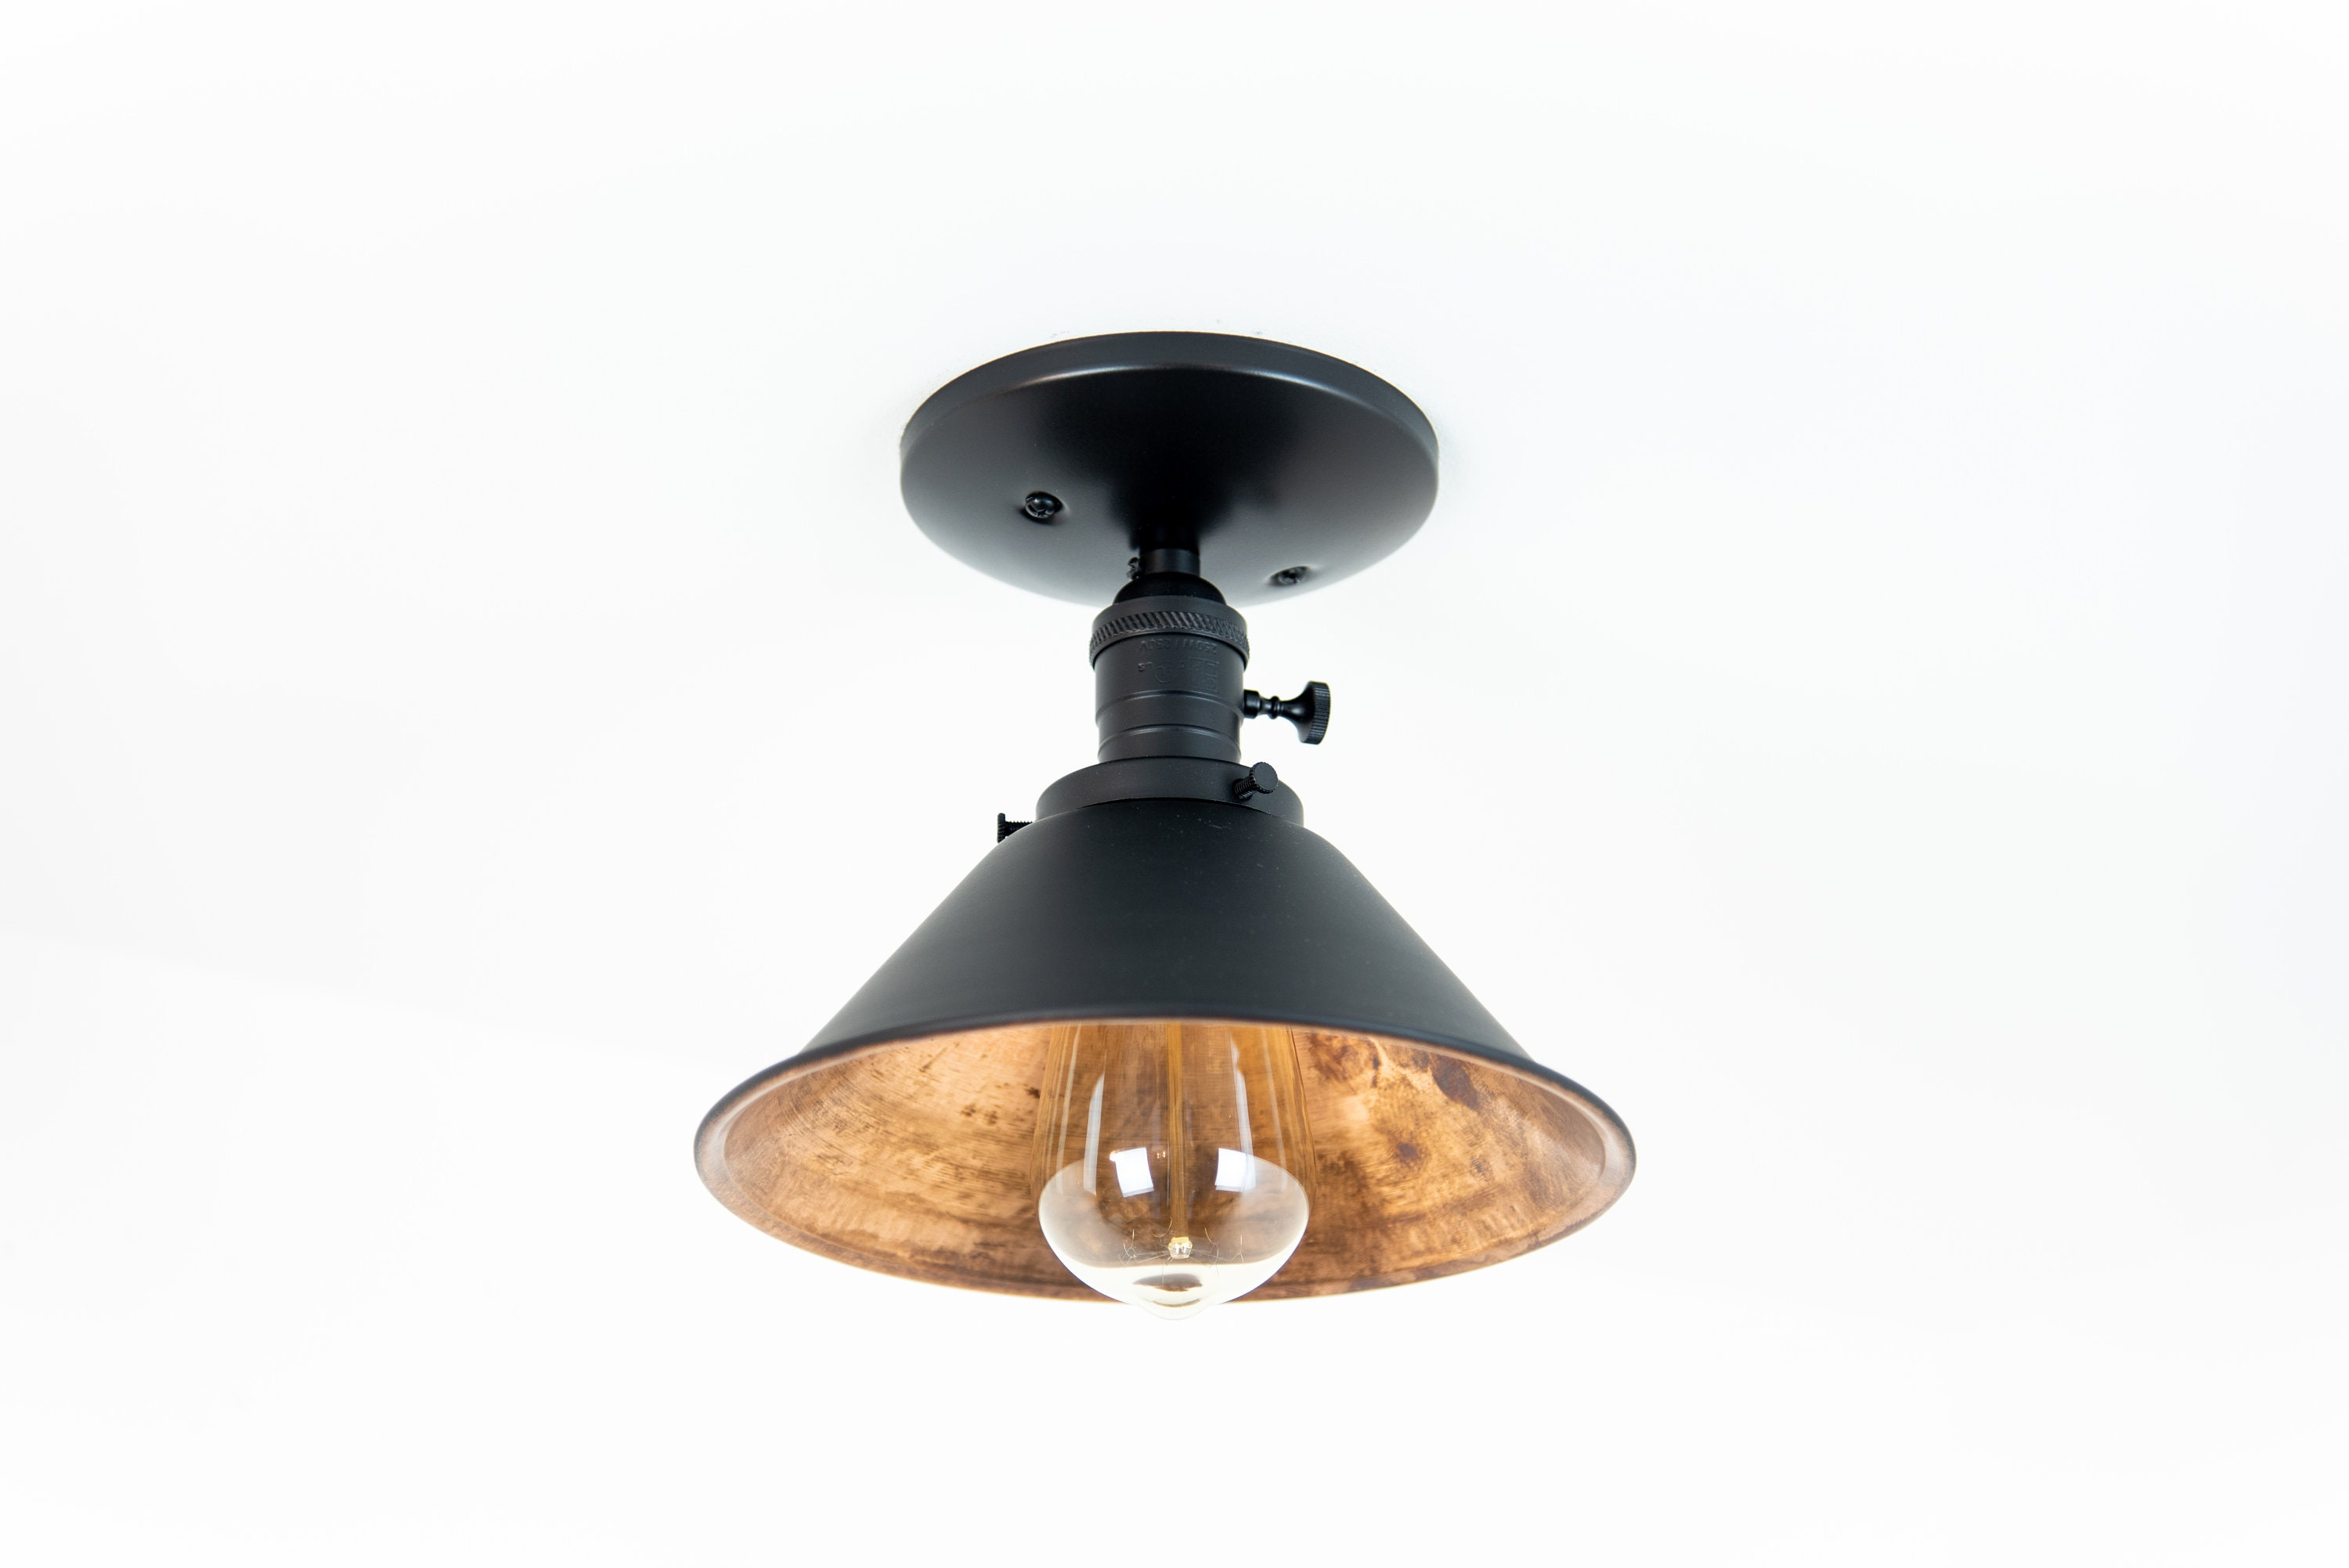 Flush mount ceiling light modern light fixture copper lights industrial chic black semi flush cone shade industrial lighting